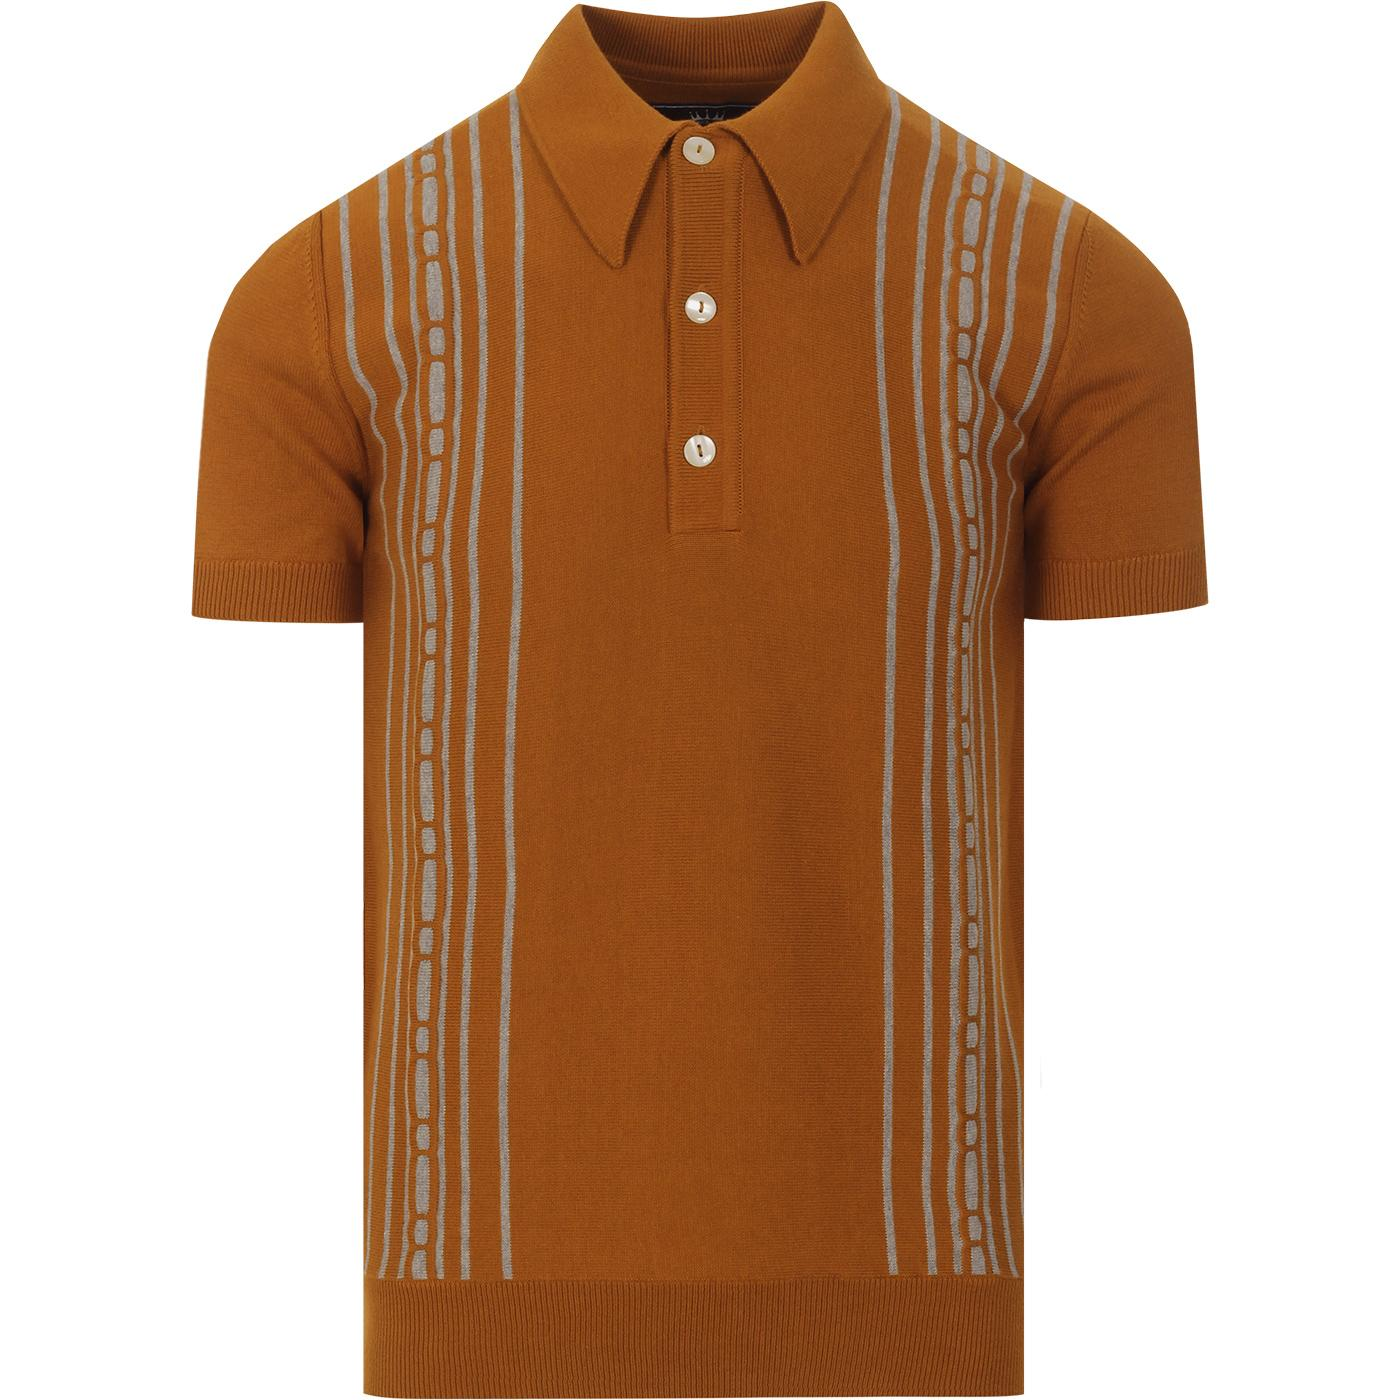 TROJAN RECORDS Mod Texture Dash Stripe Polo (Tan)